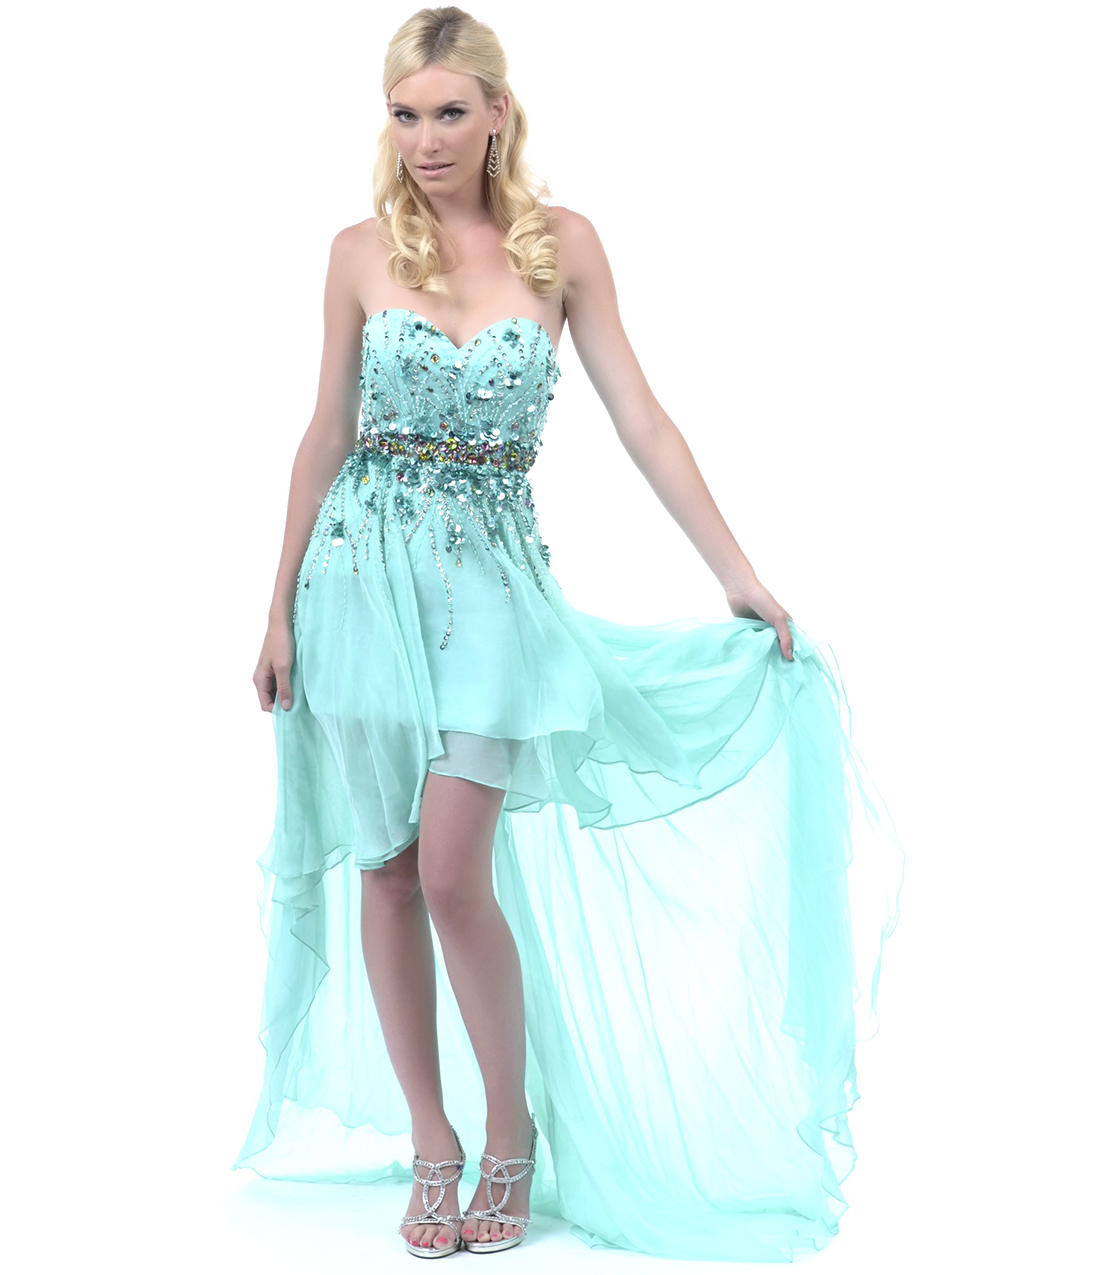 Teal High Low Dress | Dressed Up Girl